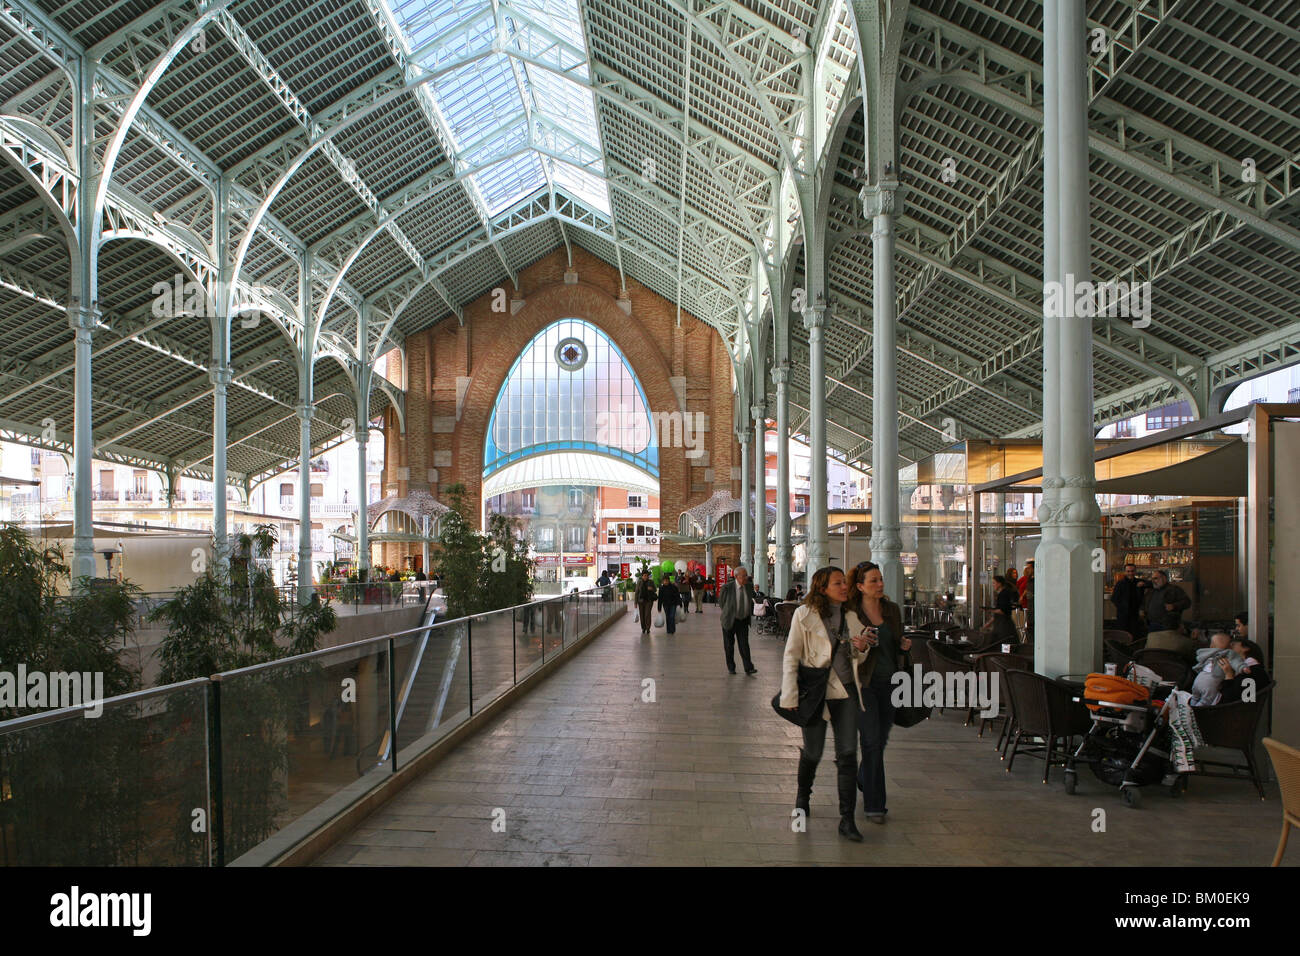 Mercado de Colon, opened in 1916, 2003 refurbished with cafes, bars, and boutiques, Valencia, Spain - Stock Image